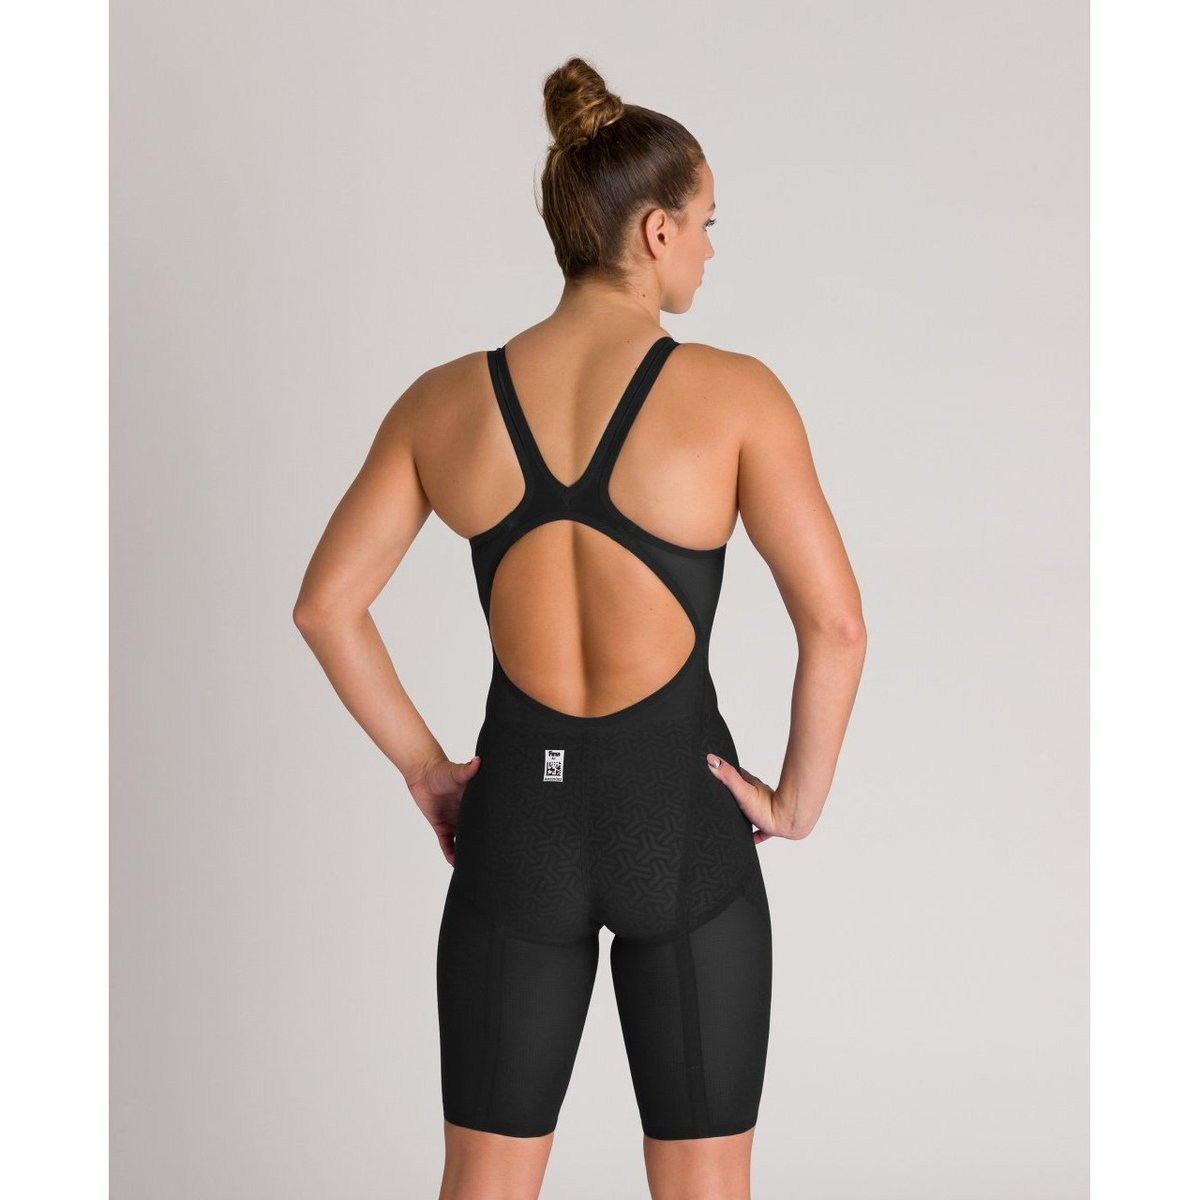 ARENA POWERSKIN Carbon Glide Women's Open Back - Black-Gold-TechSuits.ca